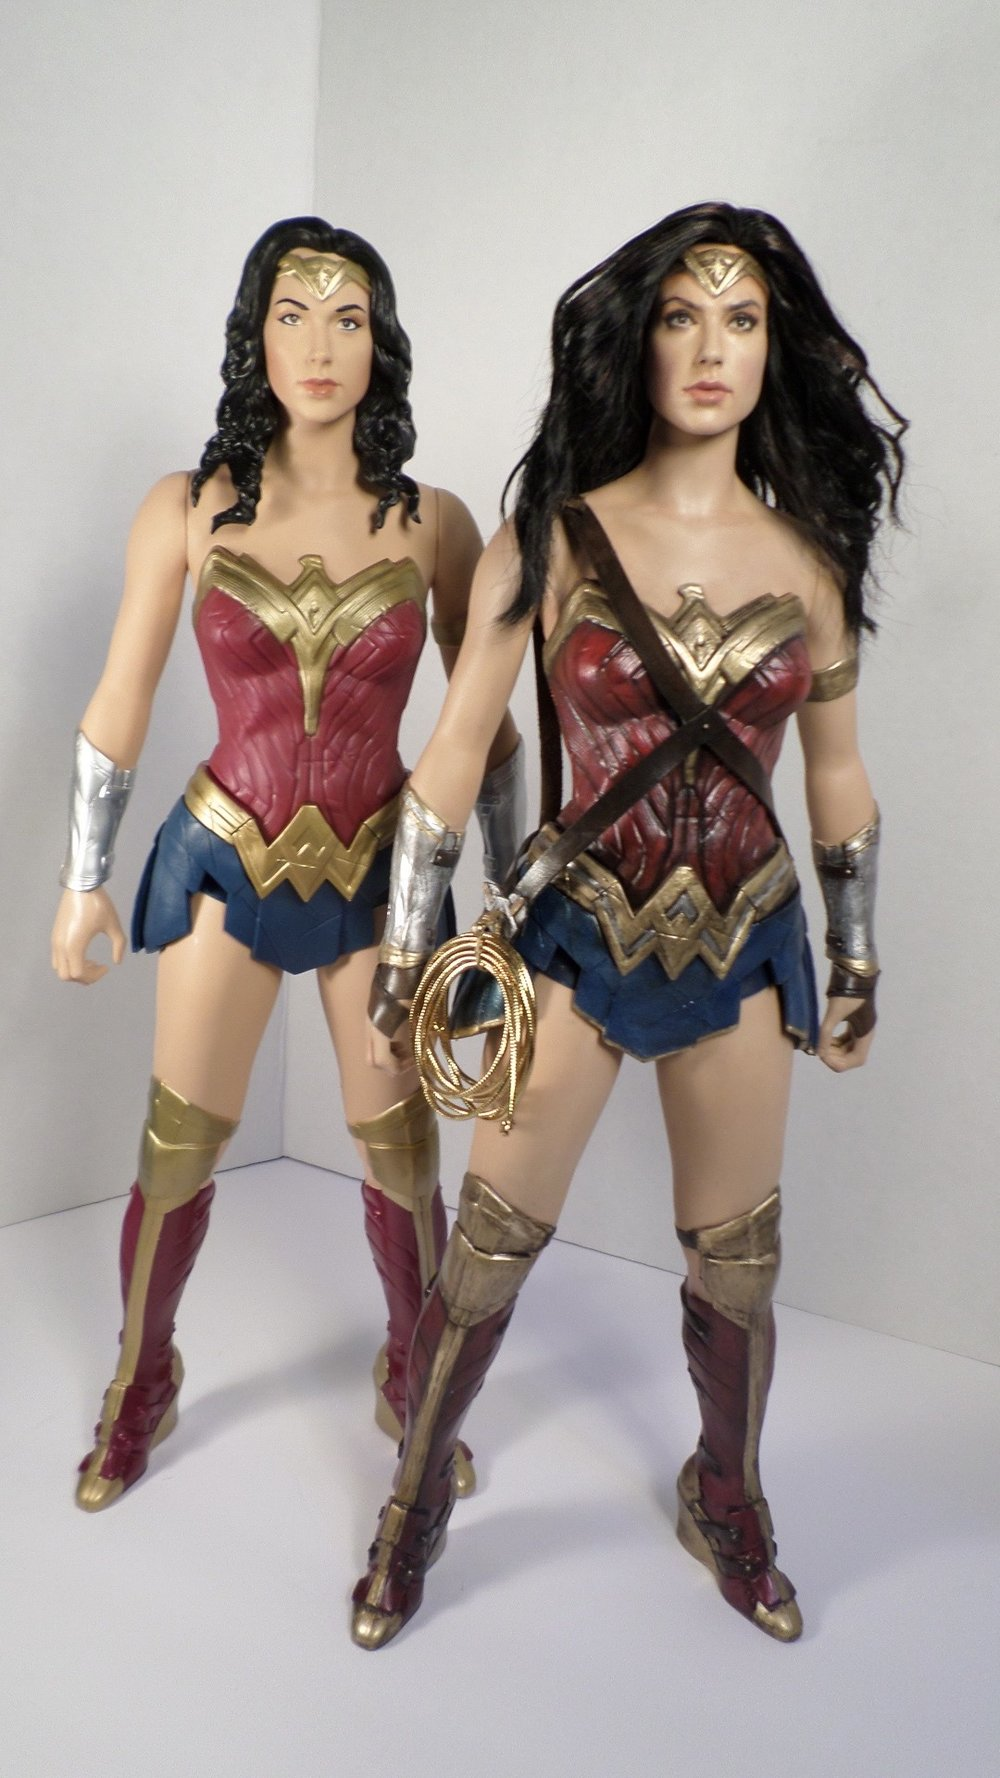 Wonder Woman action figure redo. Comparison before and after. 2017.